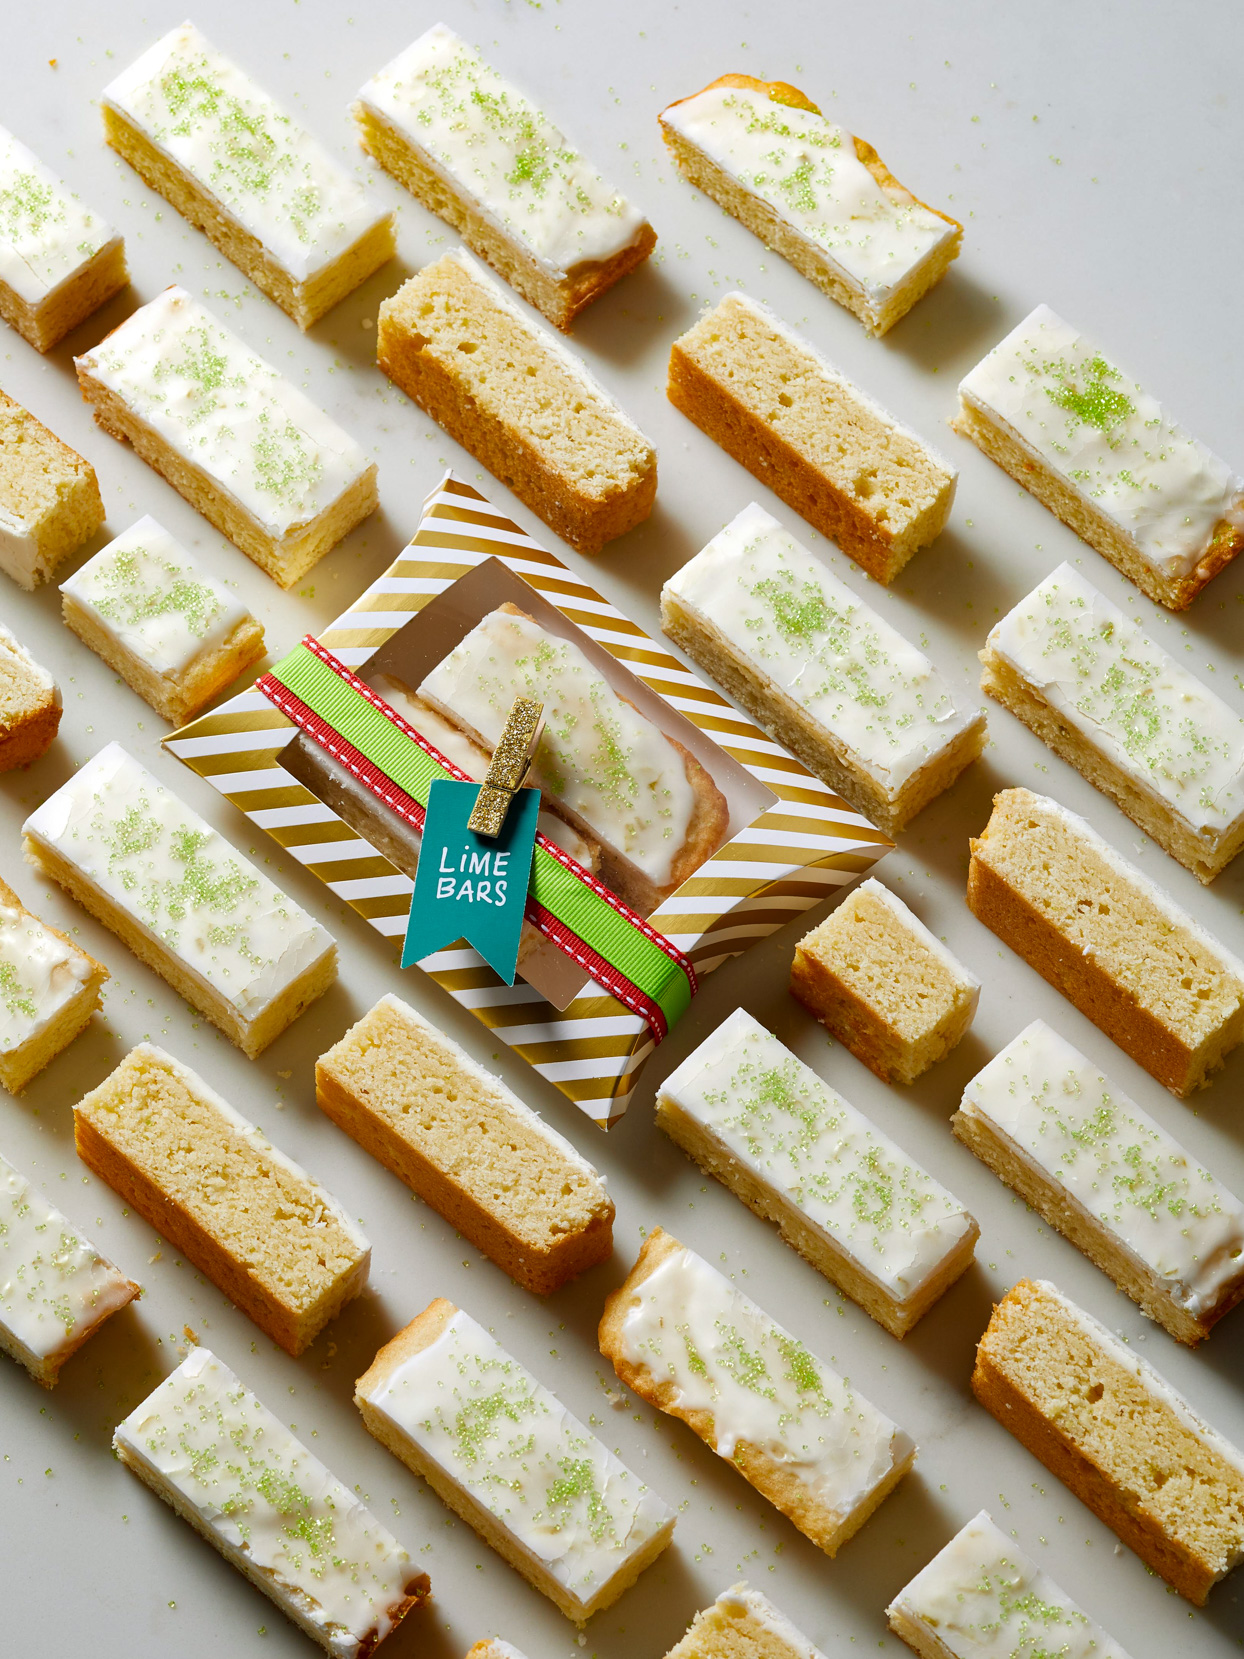 Lime Sugar Bars on marble surface